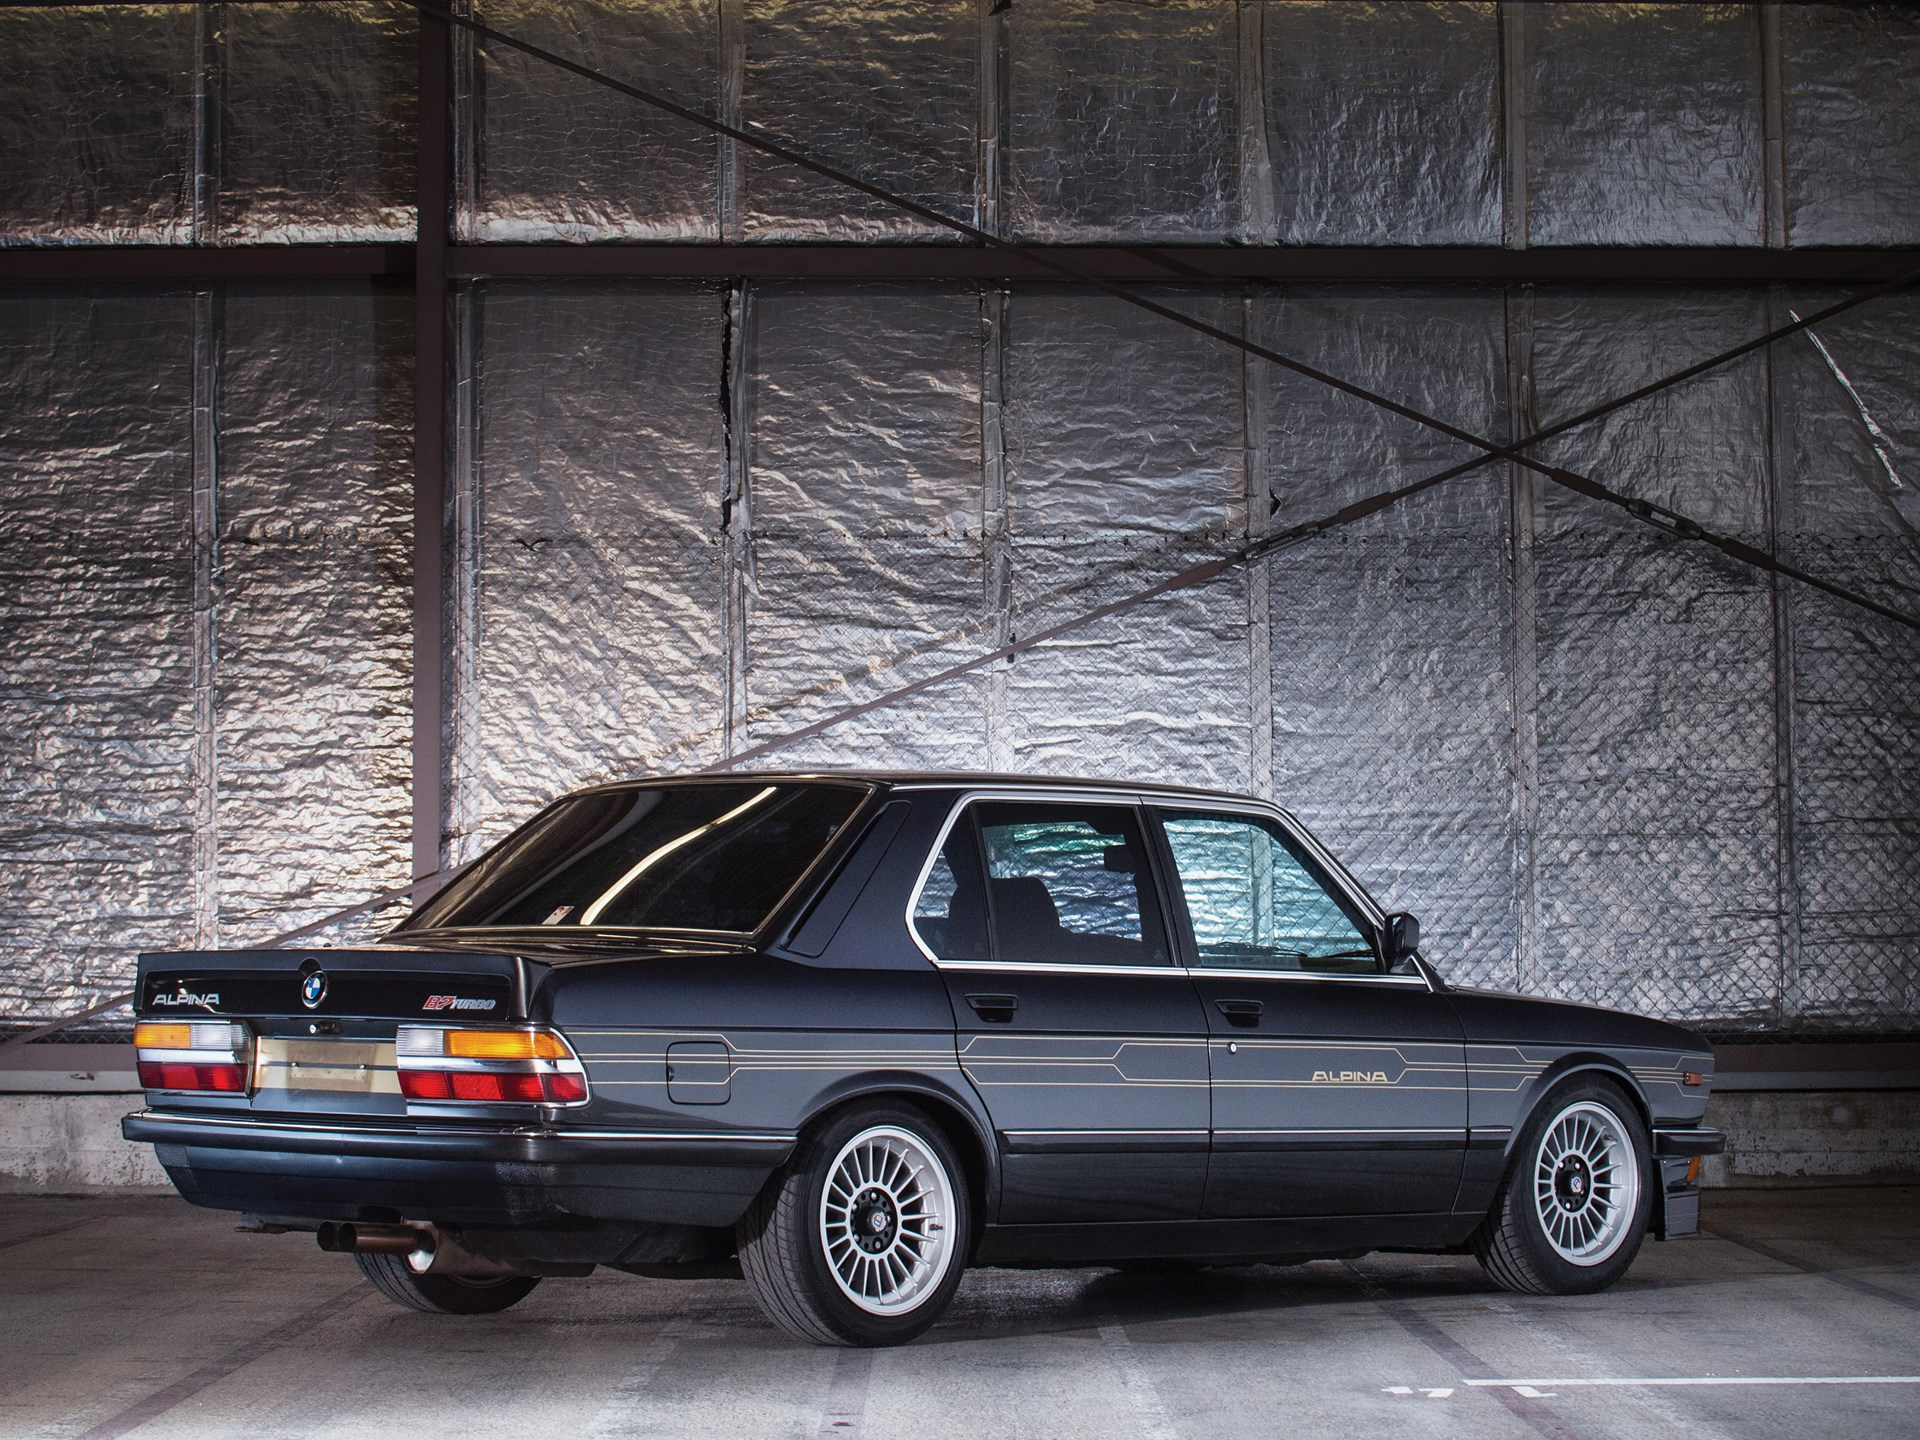 1986 BMW Alpina B7 Turbo/1